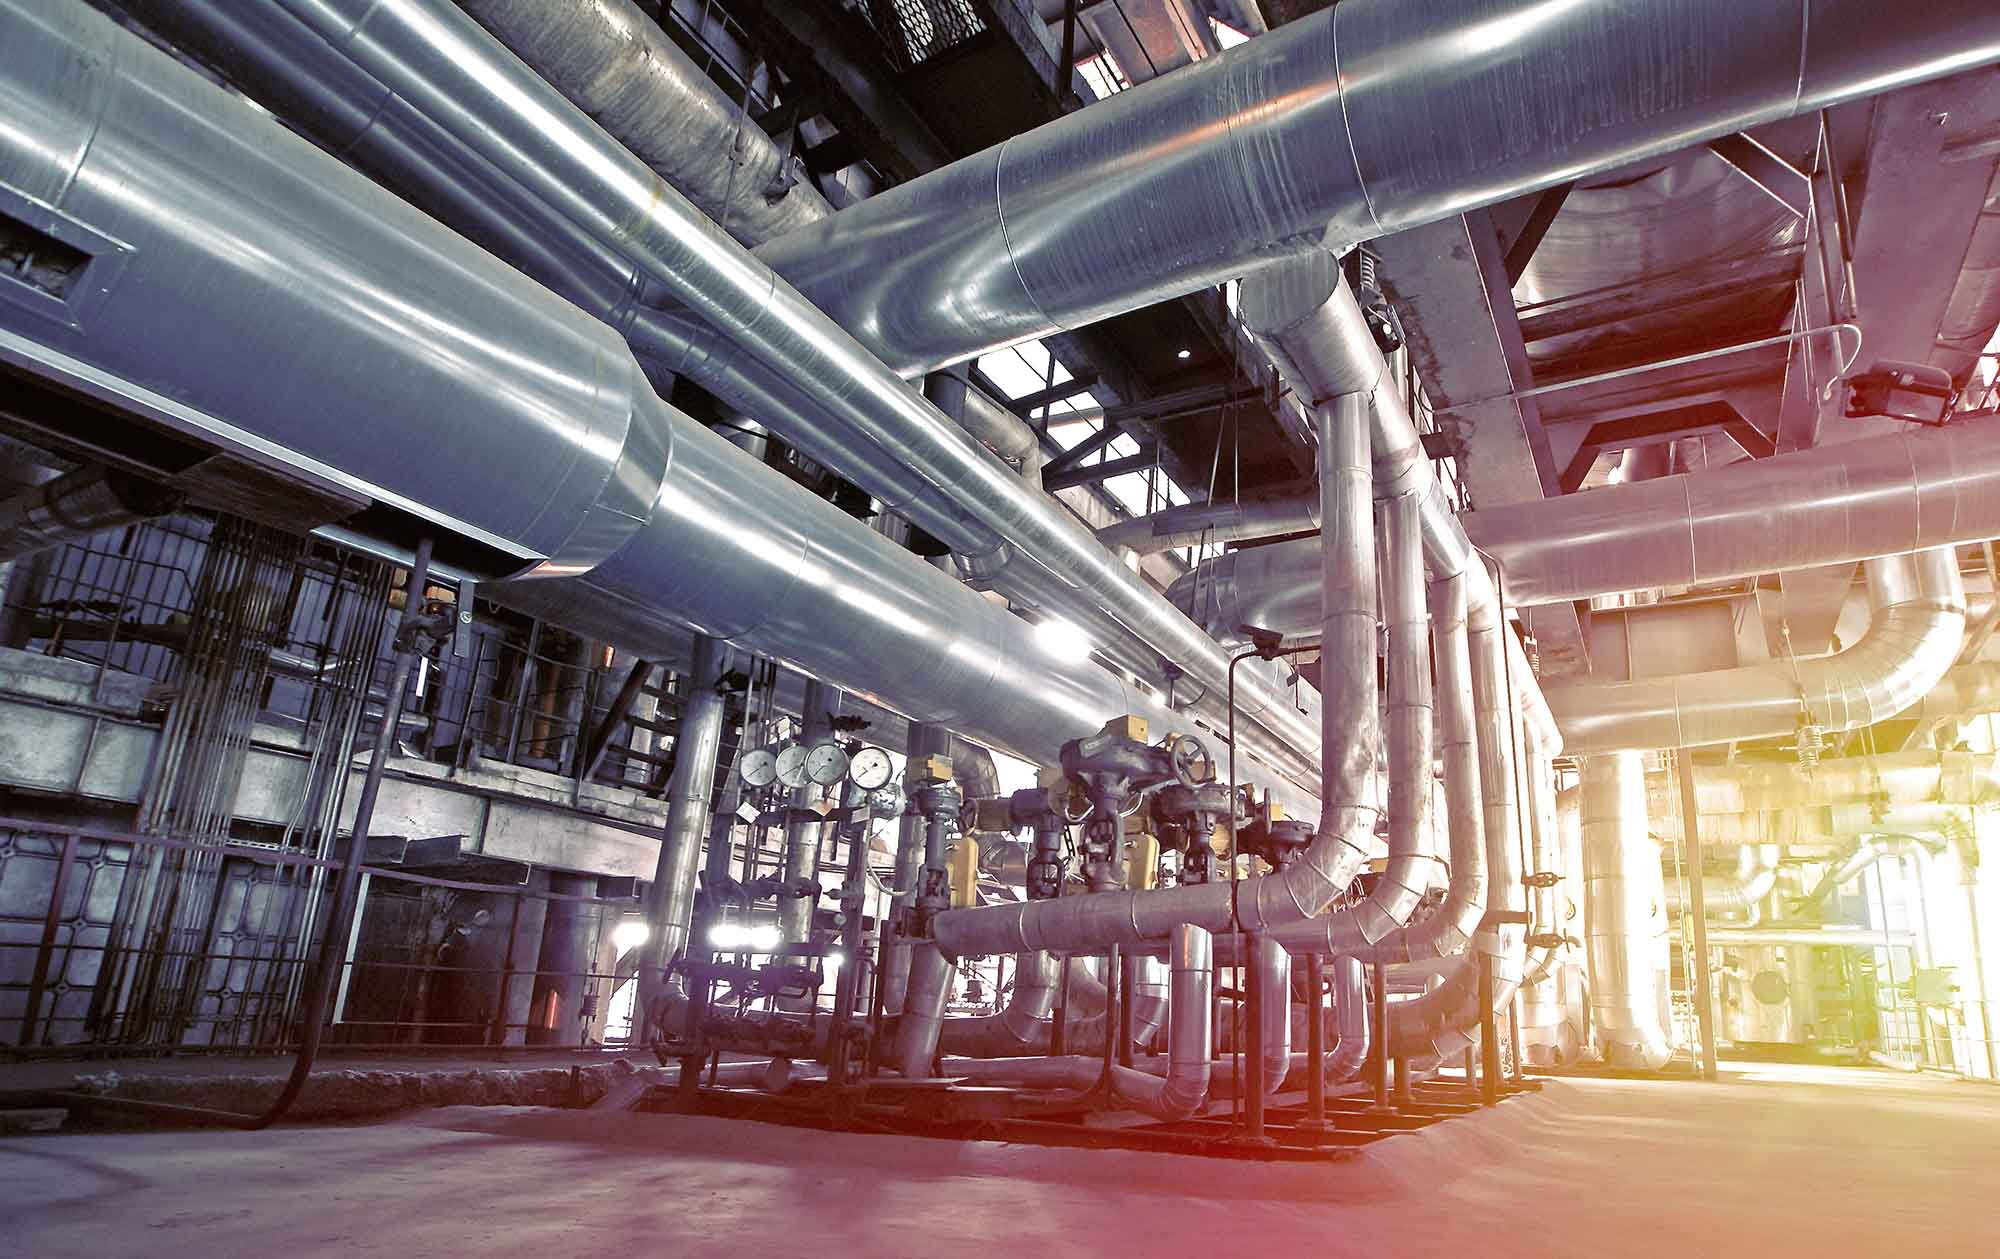 Industrial zone steel pipelines and equipment